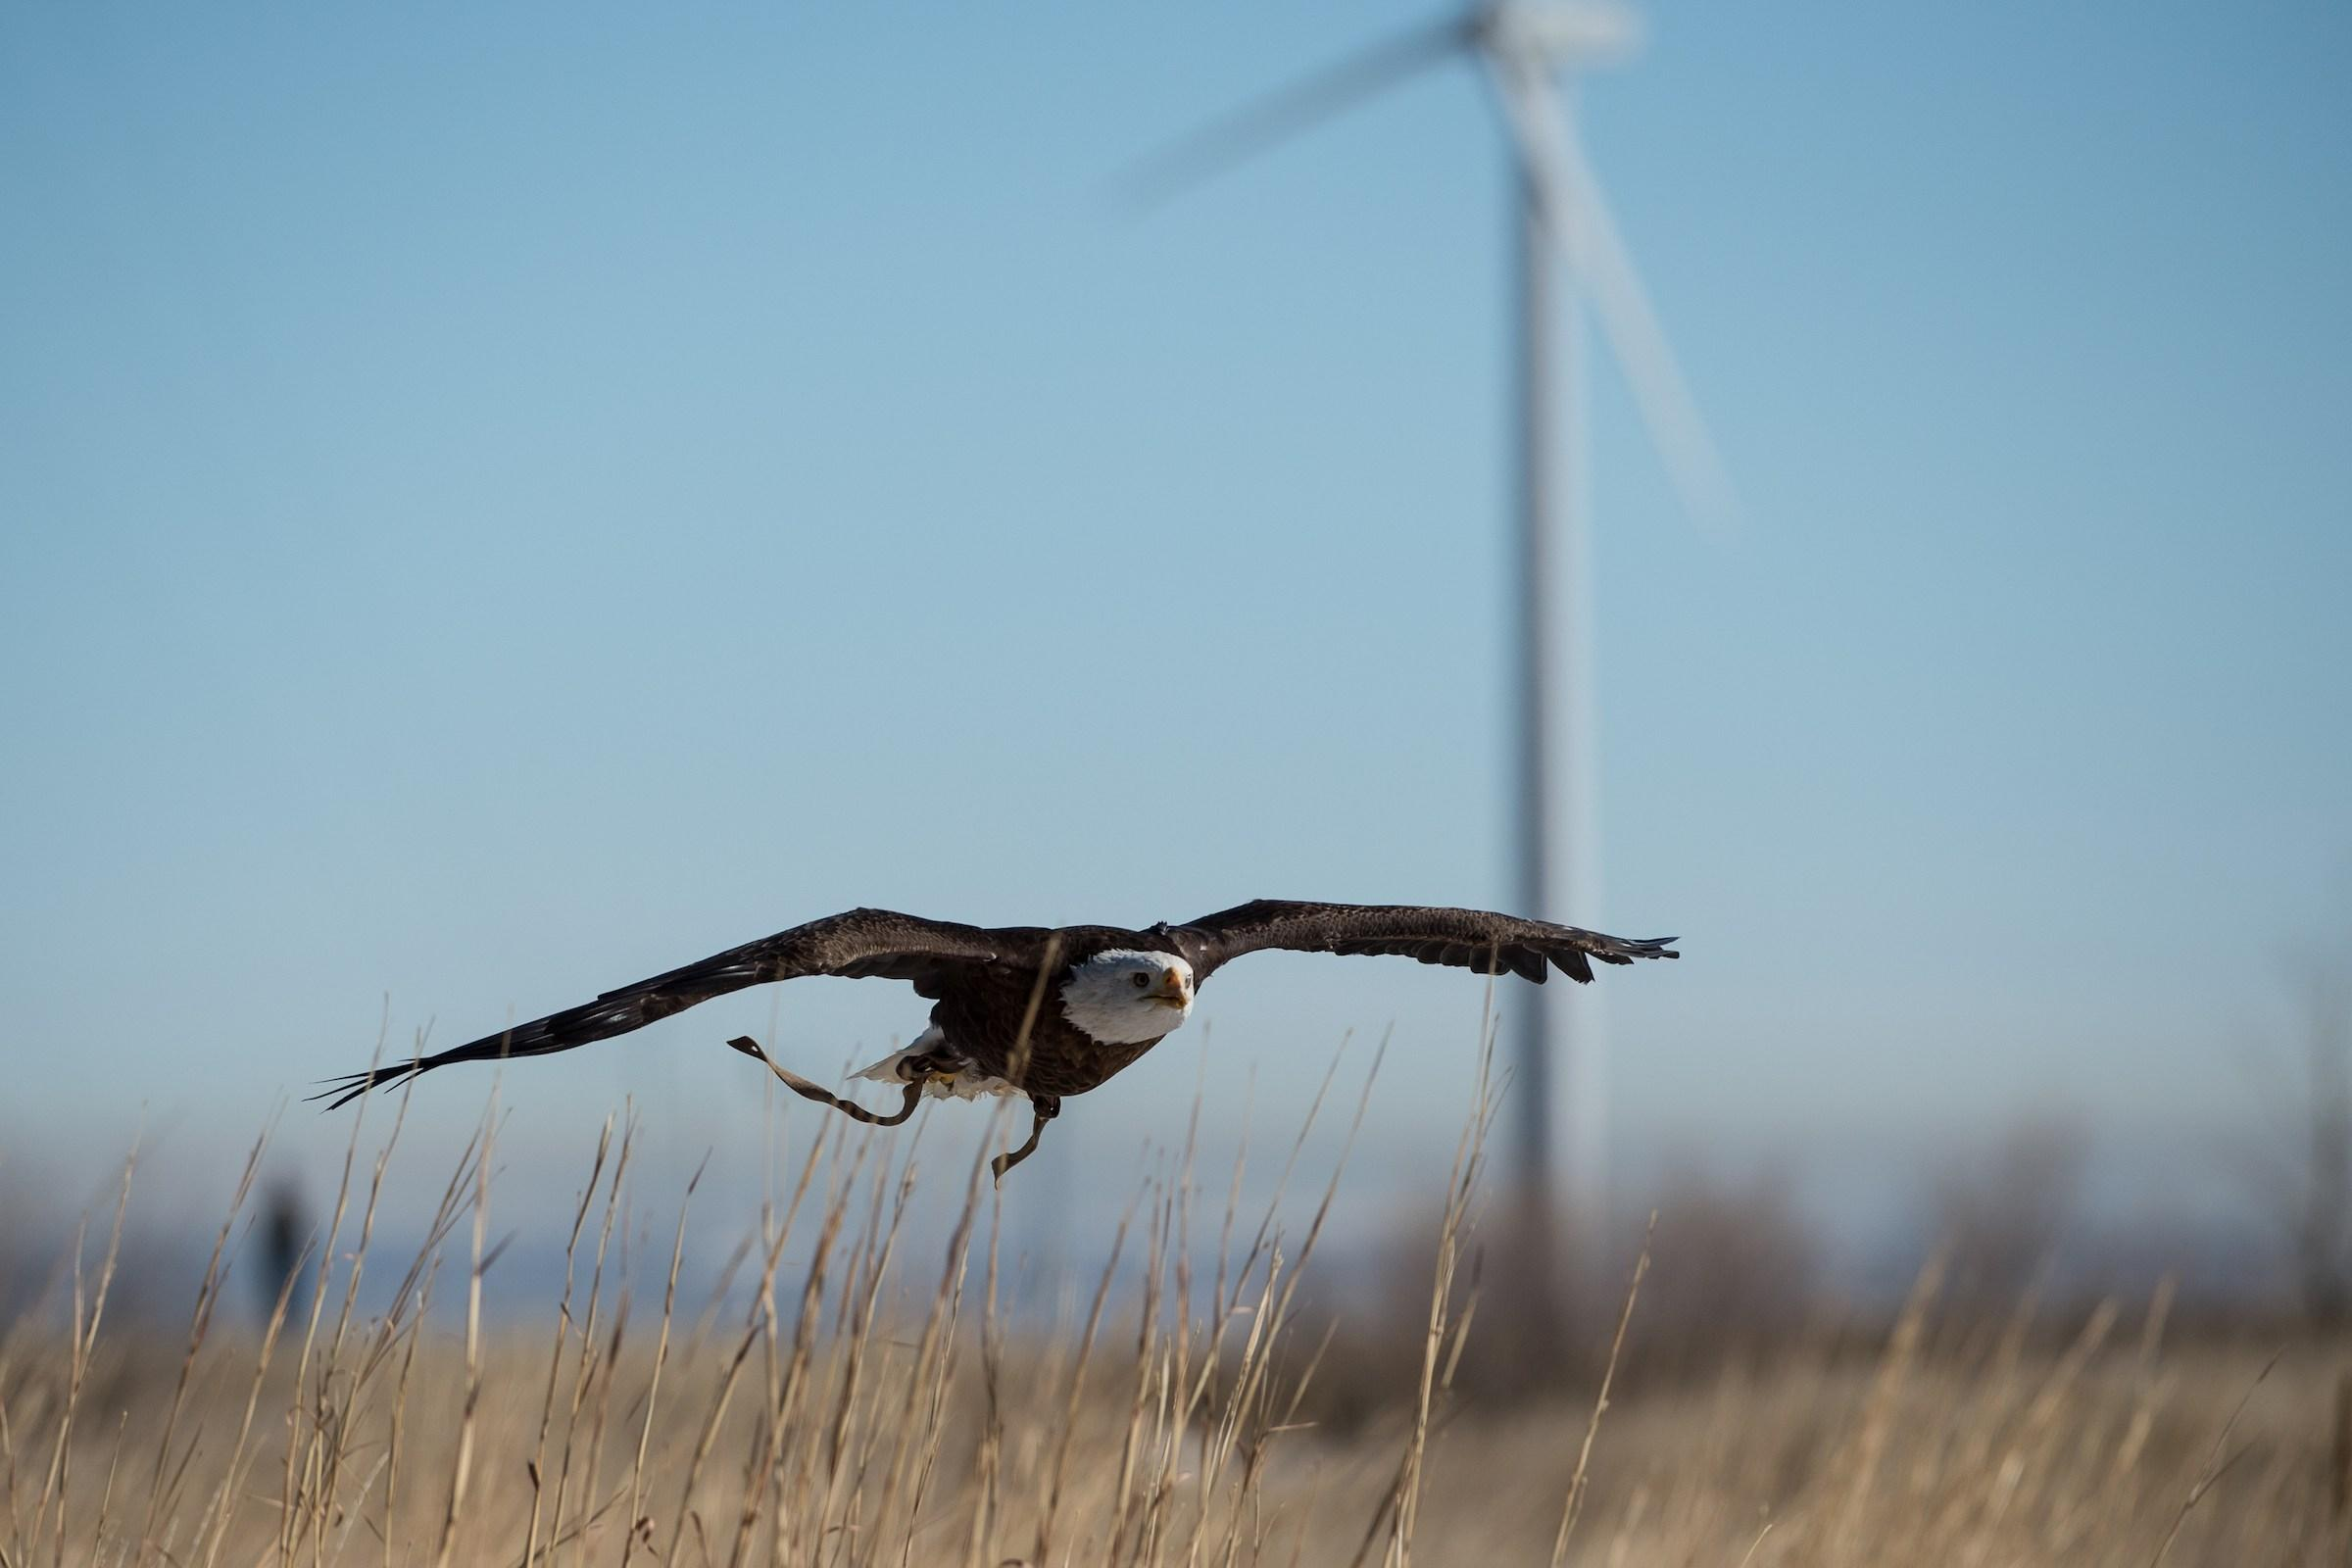 Bald eagle flying with a wind turbine in the background